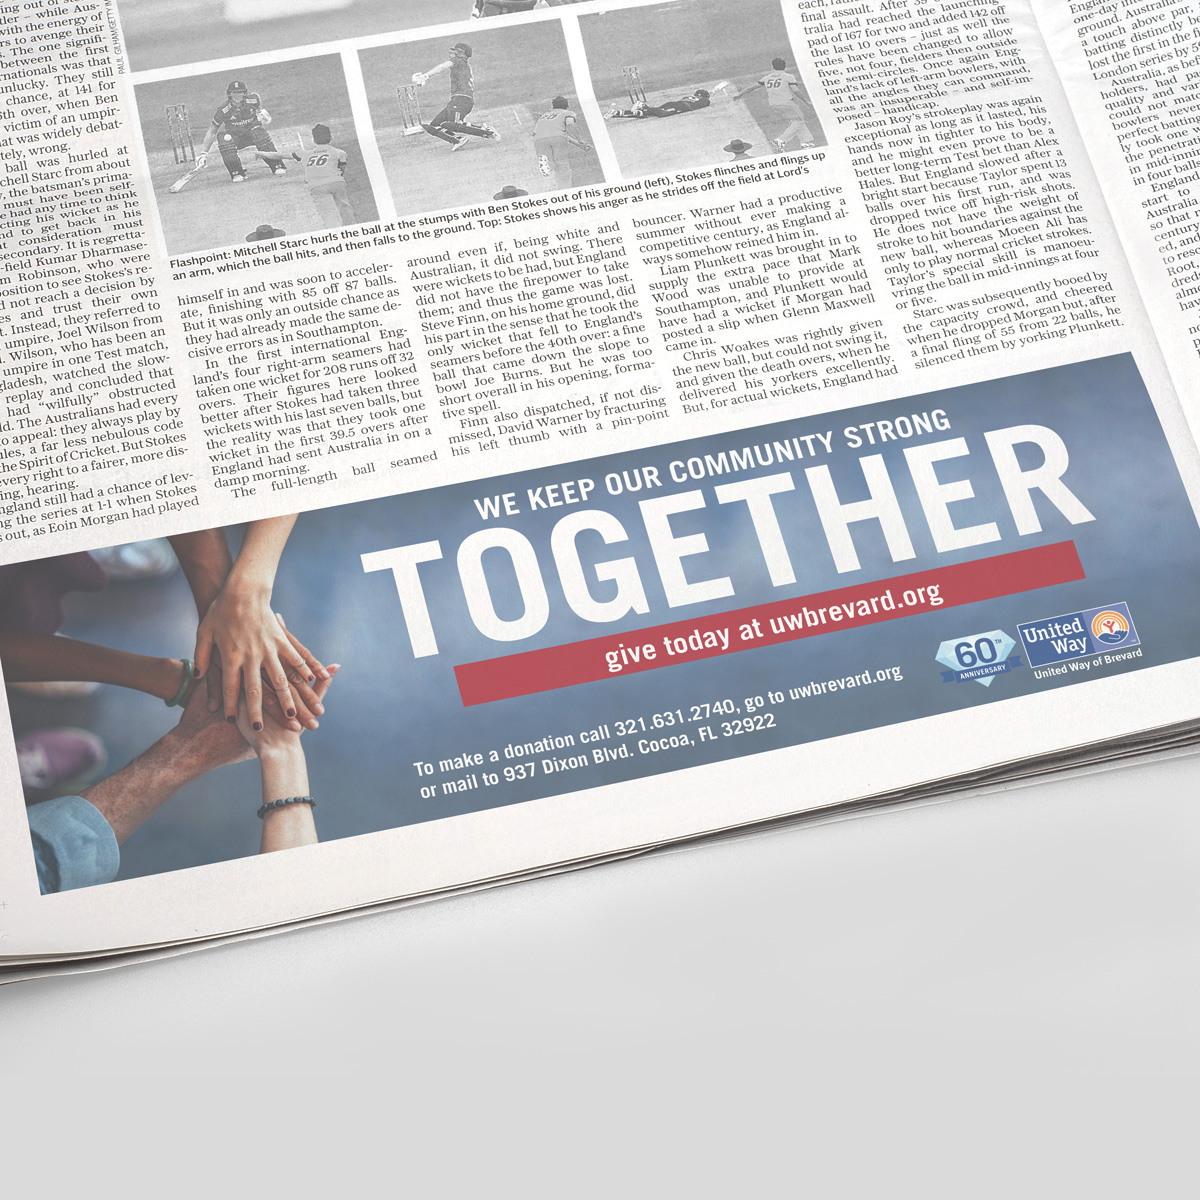 United way together campaign strip ad